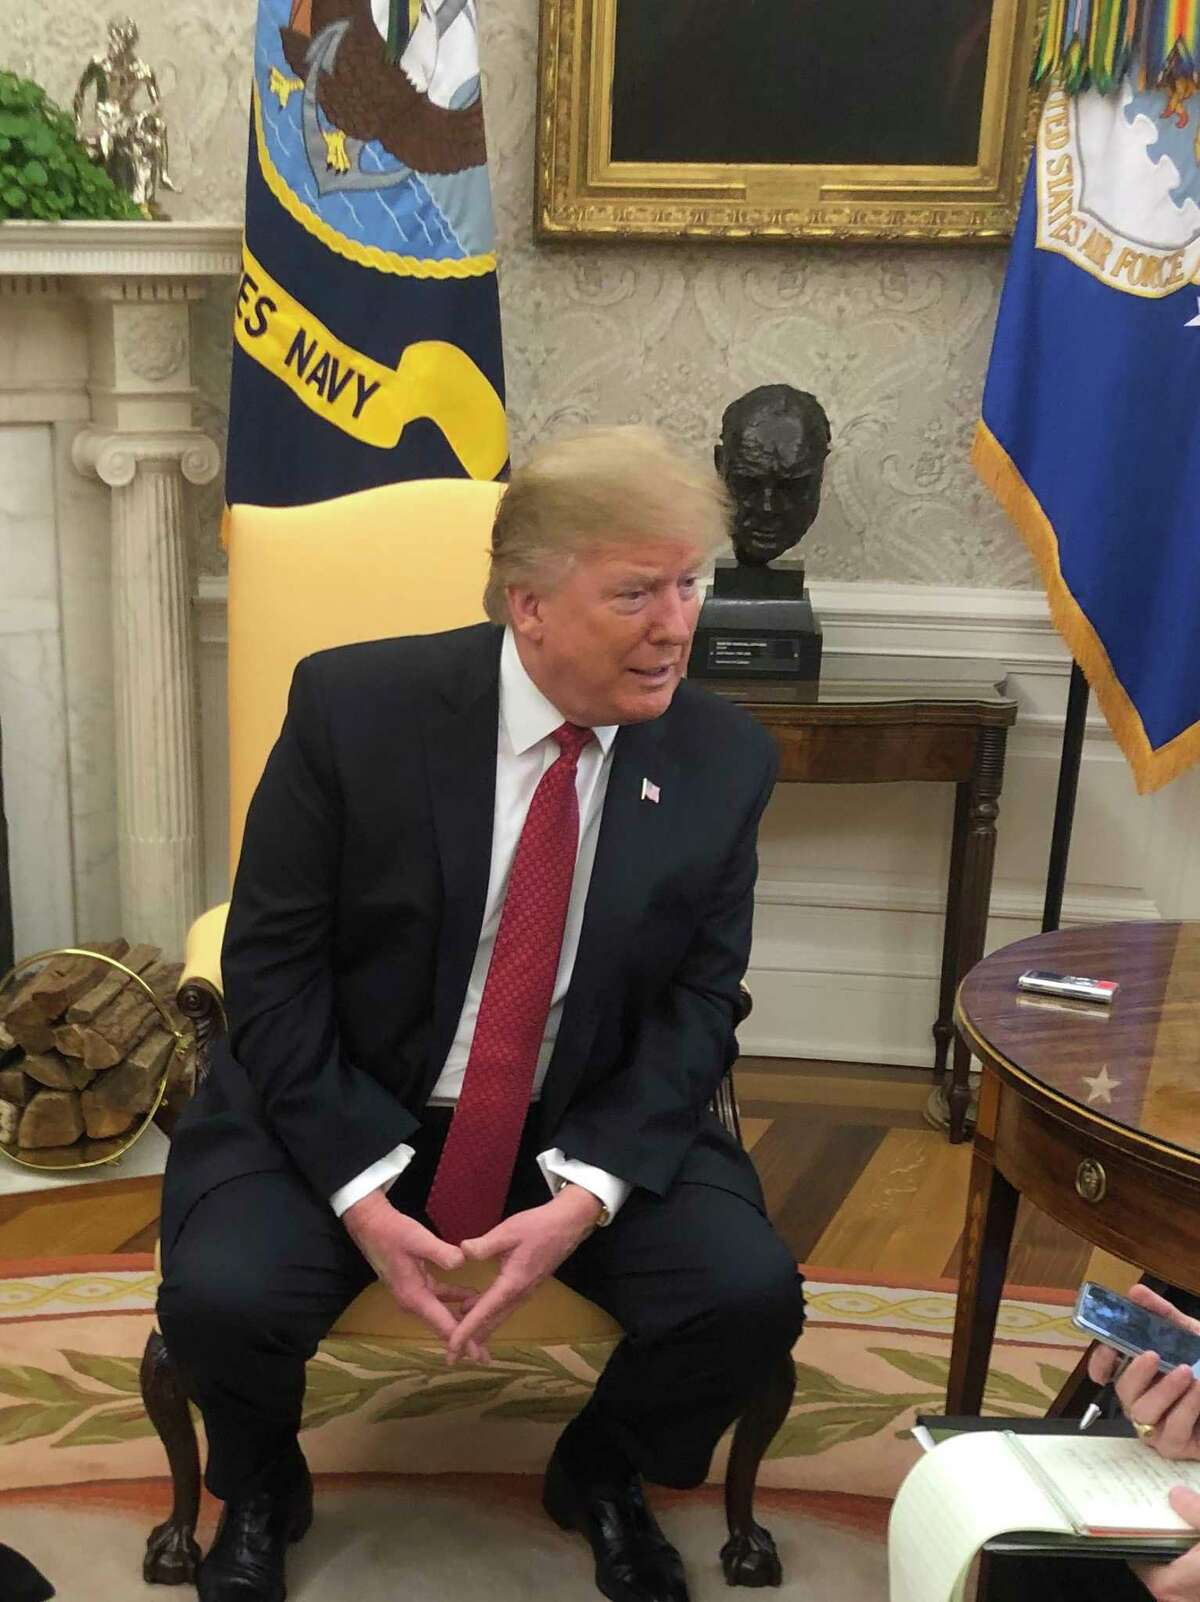 President Trump meets with reporters in the Oval Office to discuss state and local tax deductions and other New York-related issues. (Dan Freedman / Times Union/Hearst)